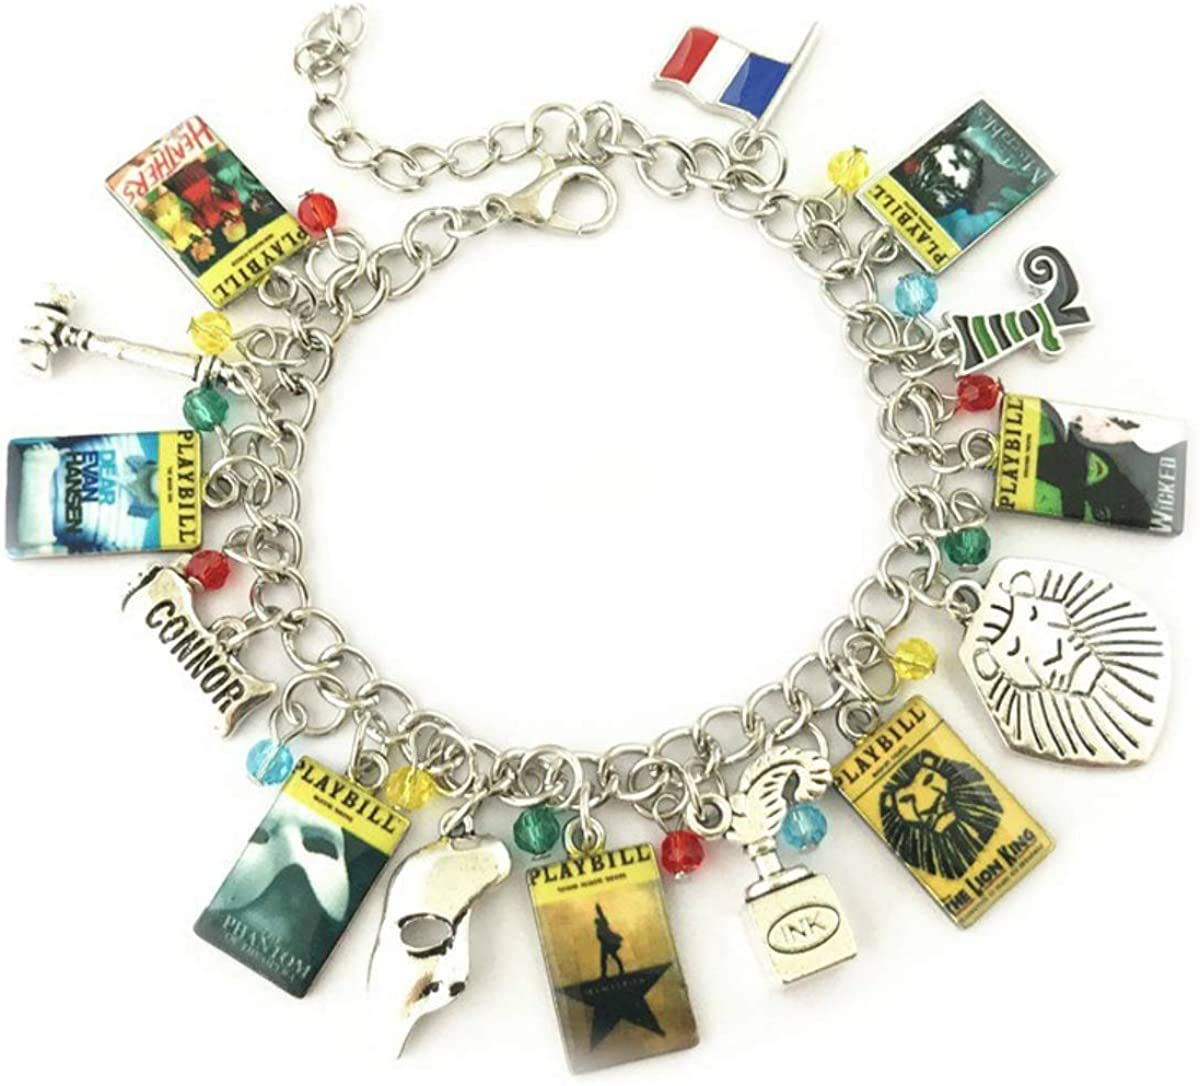 Comelyjewel Broadway Musicals Charm Bracelet Quality Cosplay Jewelry Broadway Musical Series